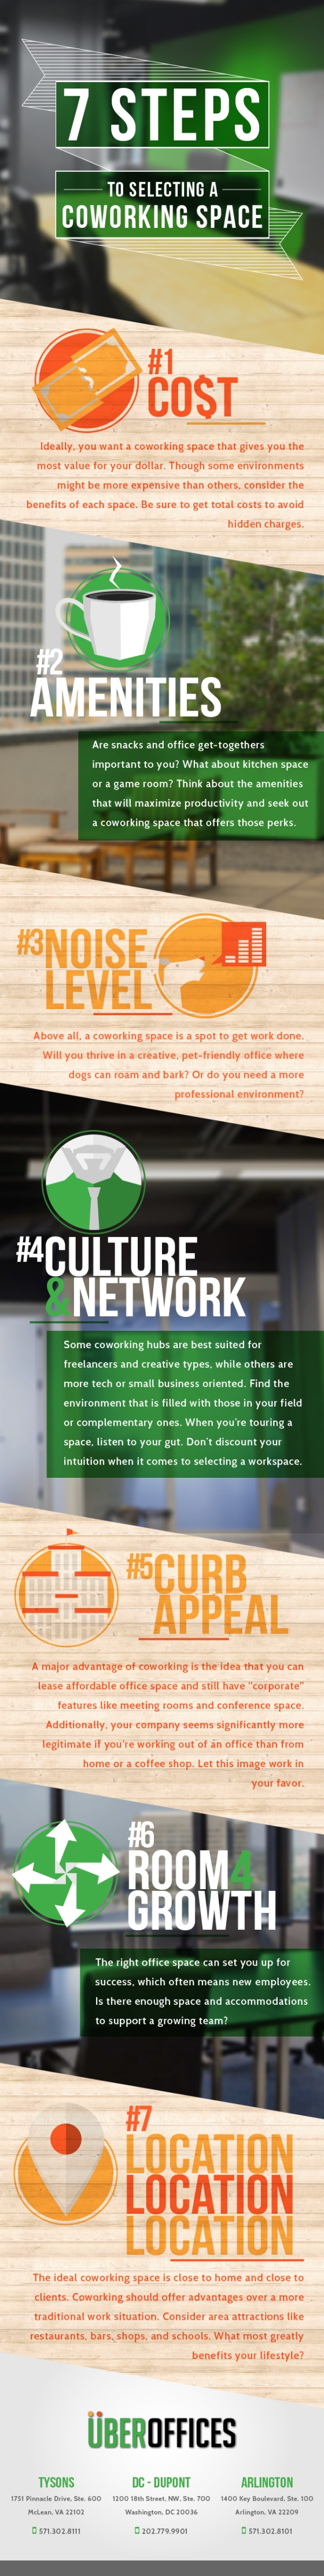 Infographic : 7 Steps to Selecting a Coworking Space